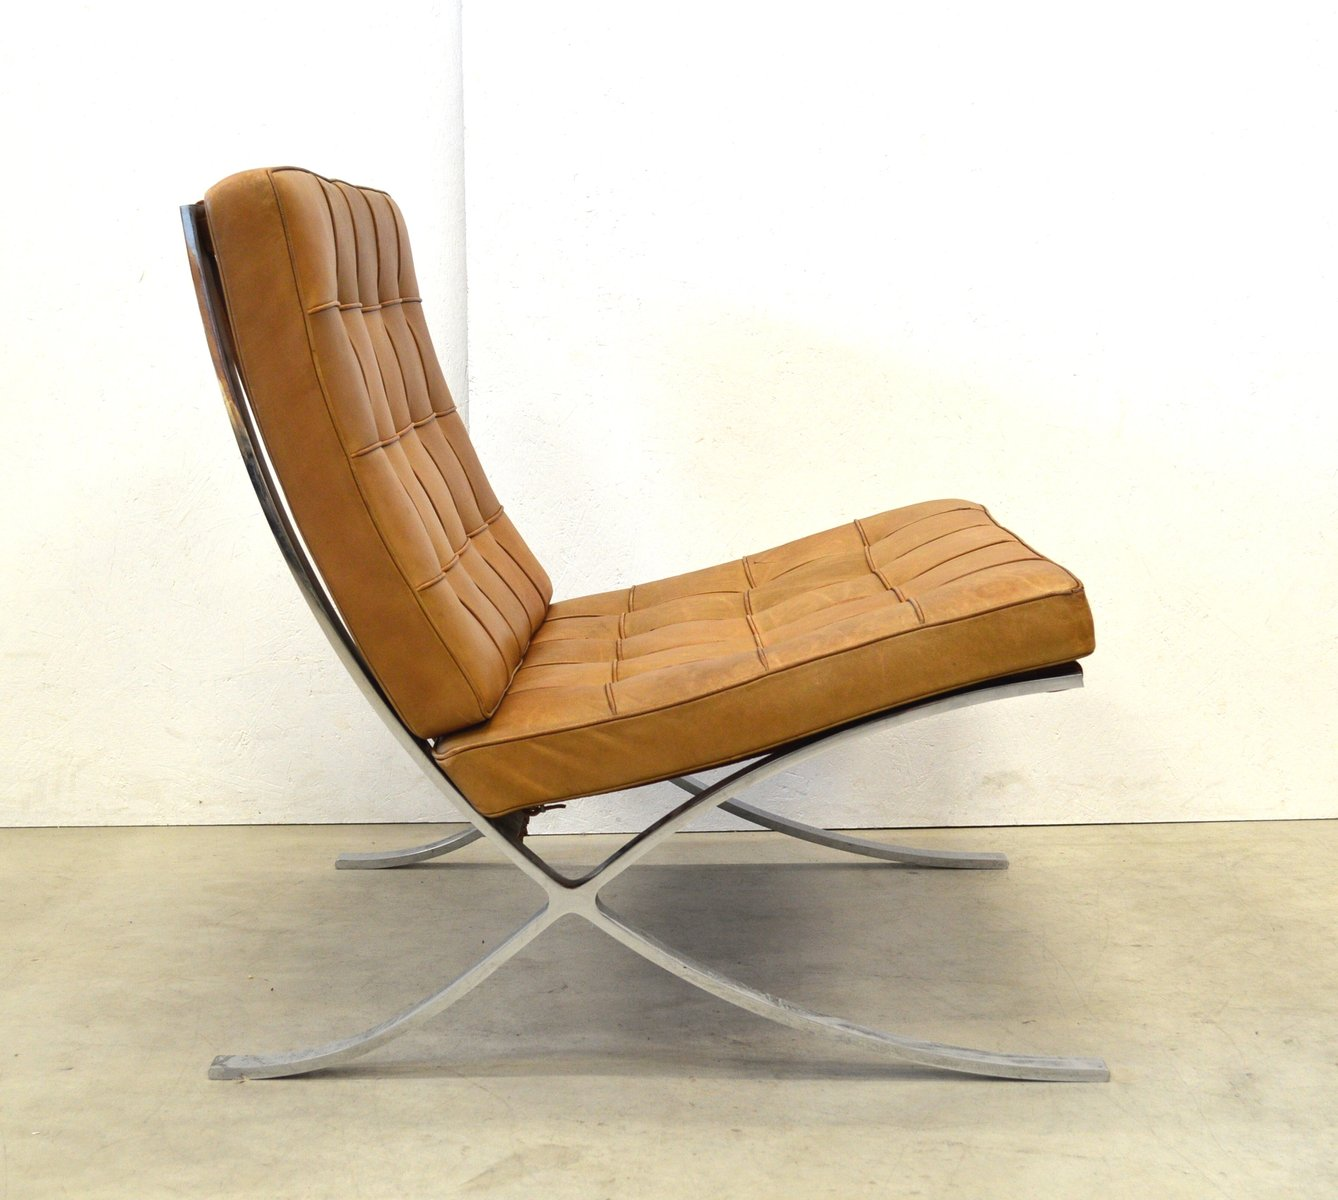 vintage barcelona chair by mies van der rohe for knoll. Black Bedroom Furniture Sets. Home Design Ideas